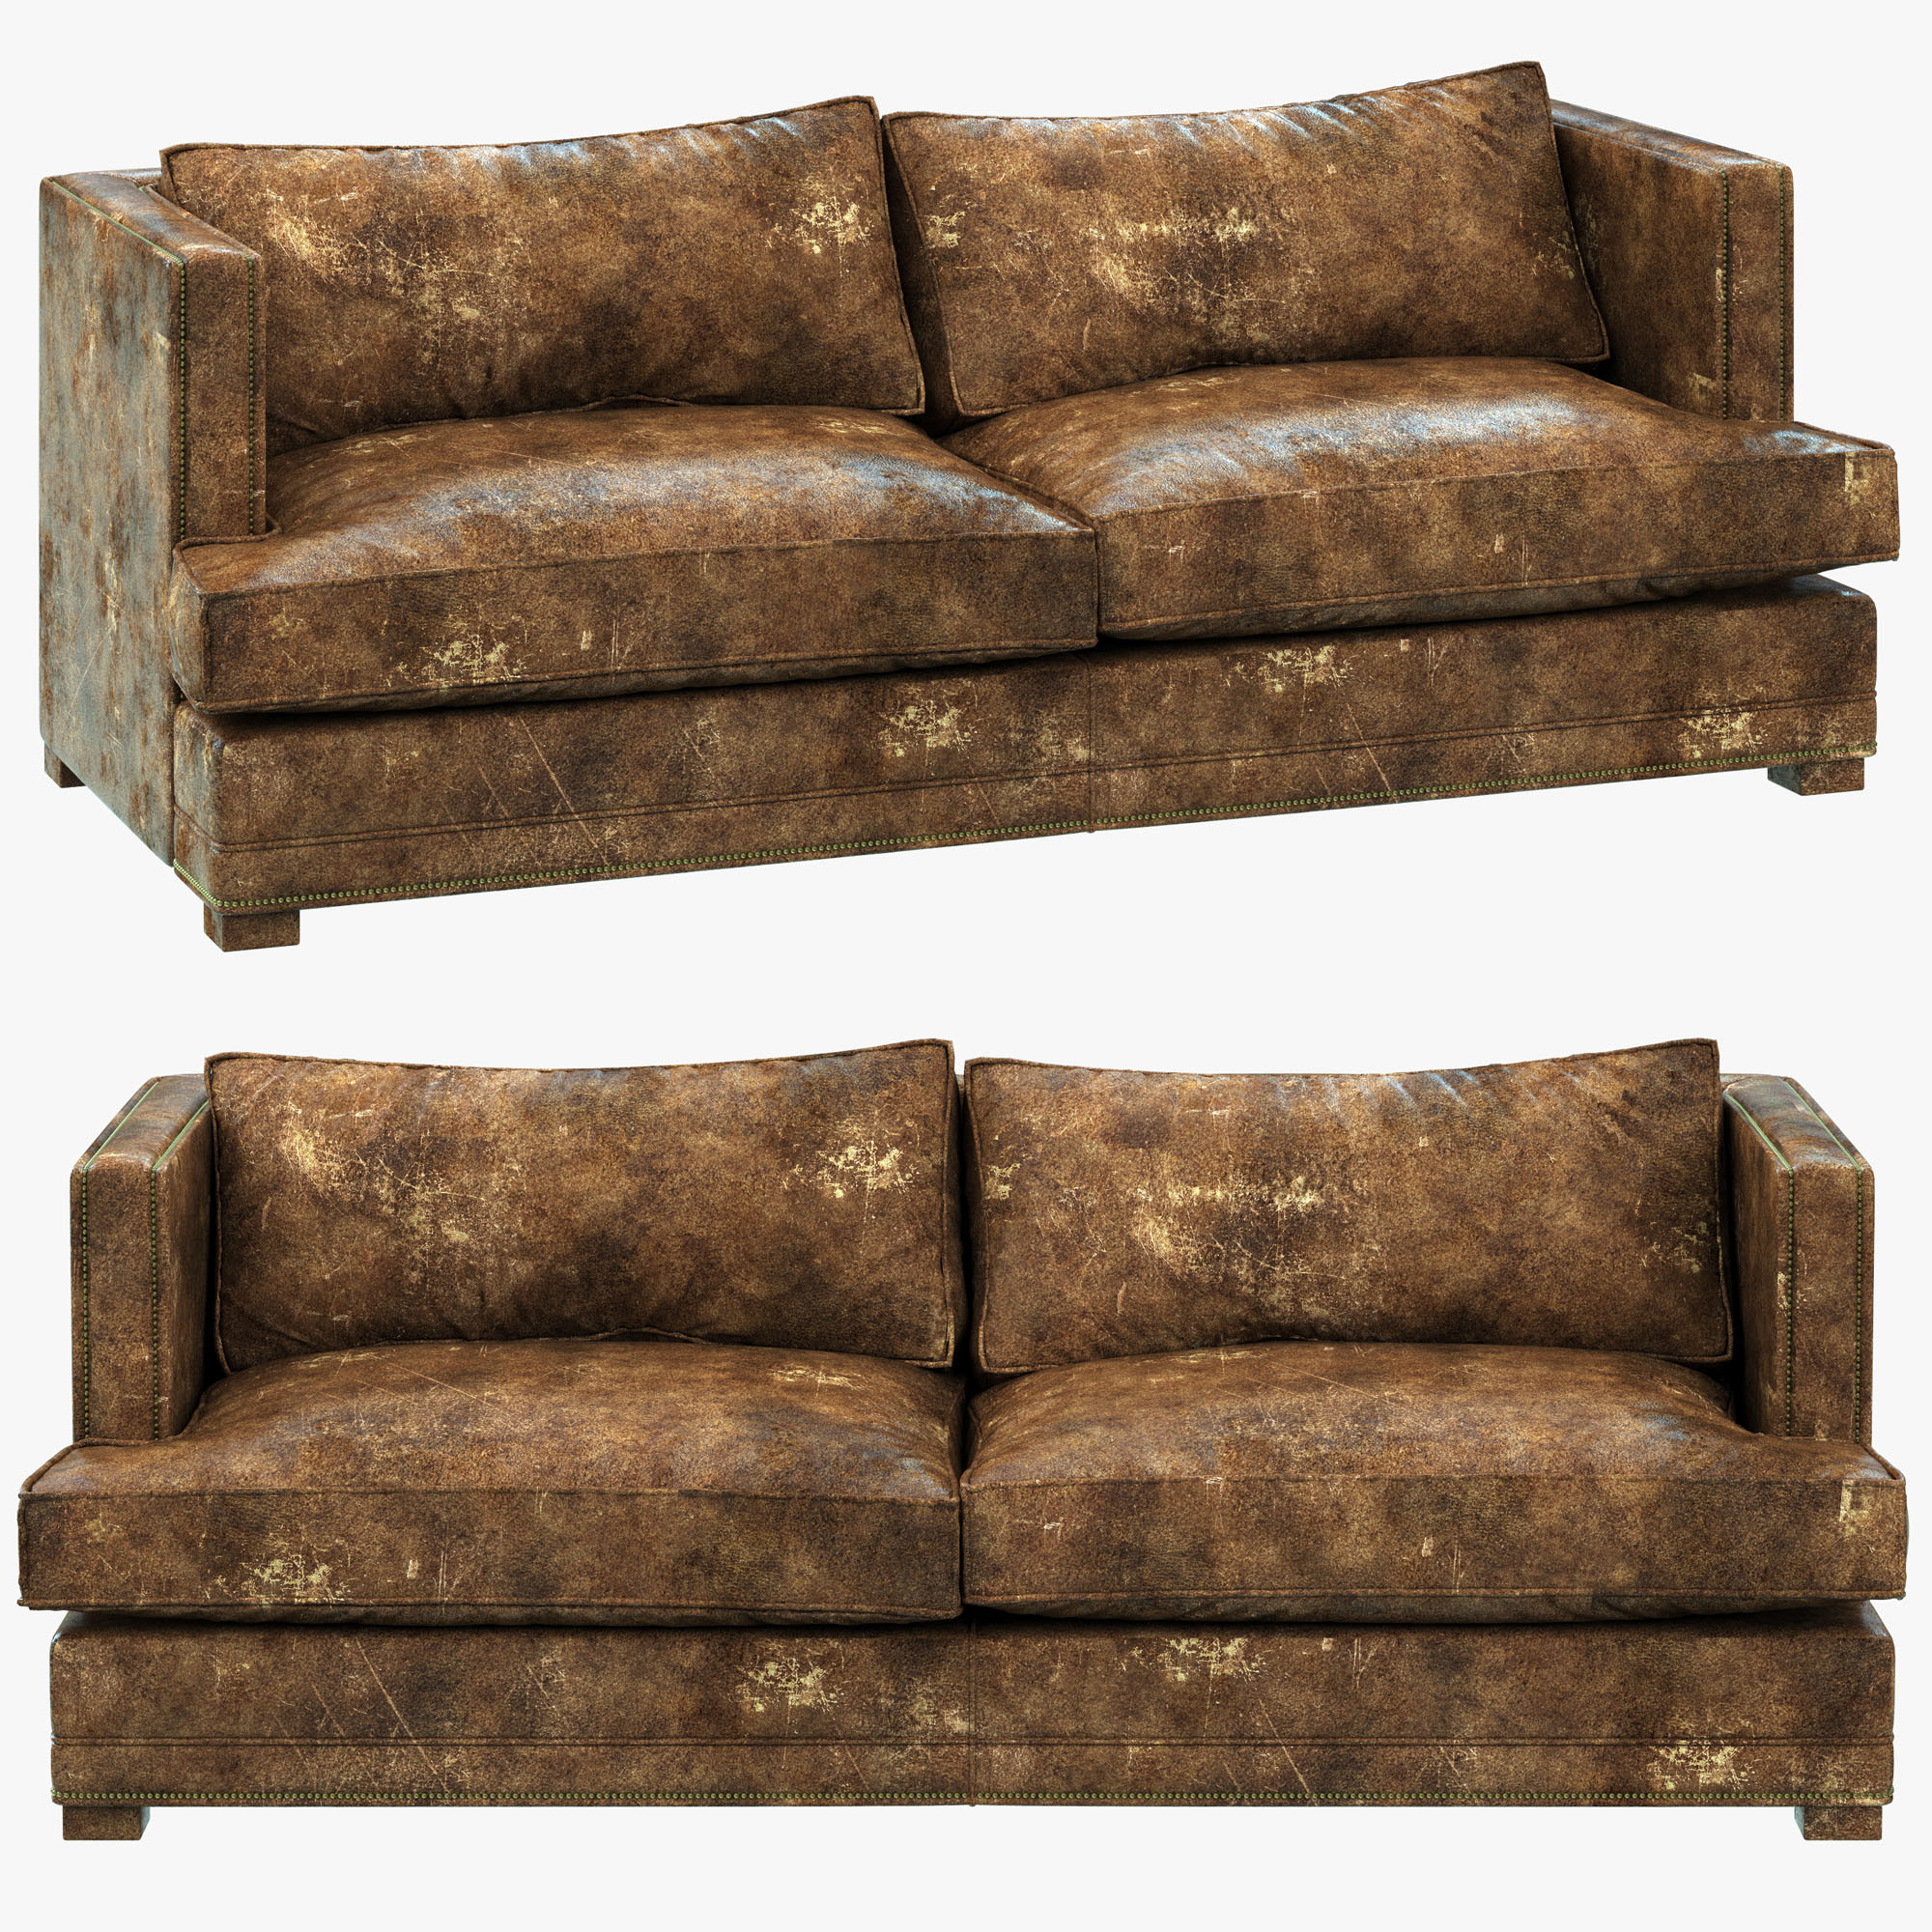 3d model restoration hardware easton leather sofa for Easton leather sectional sofa